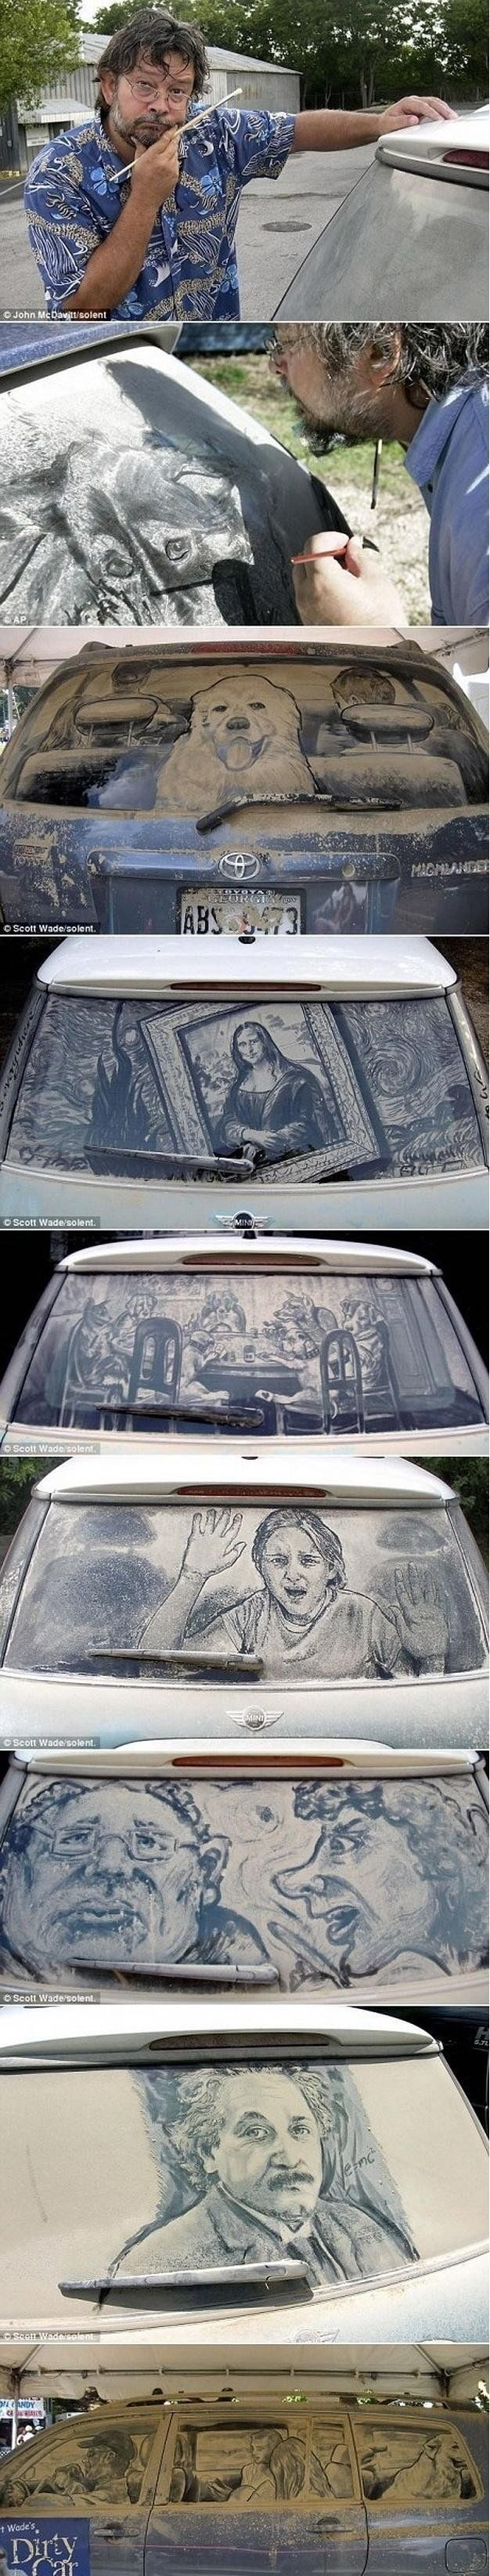 Best Dirty Windshield Art Images On Pinterest Lwren Scott - Scott wade makes wonderful art dusty car windows